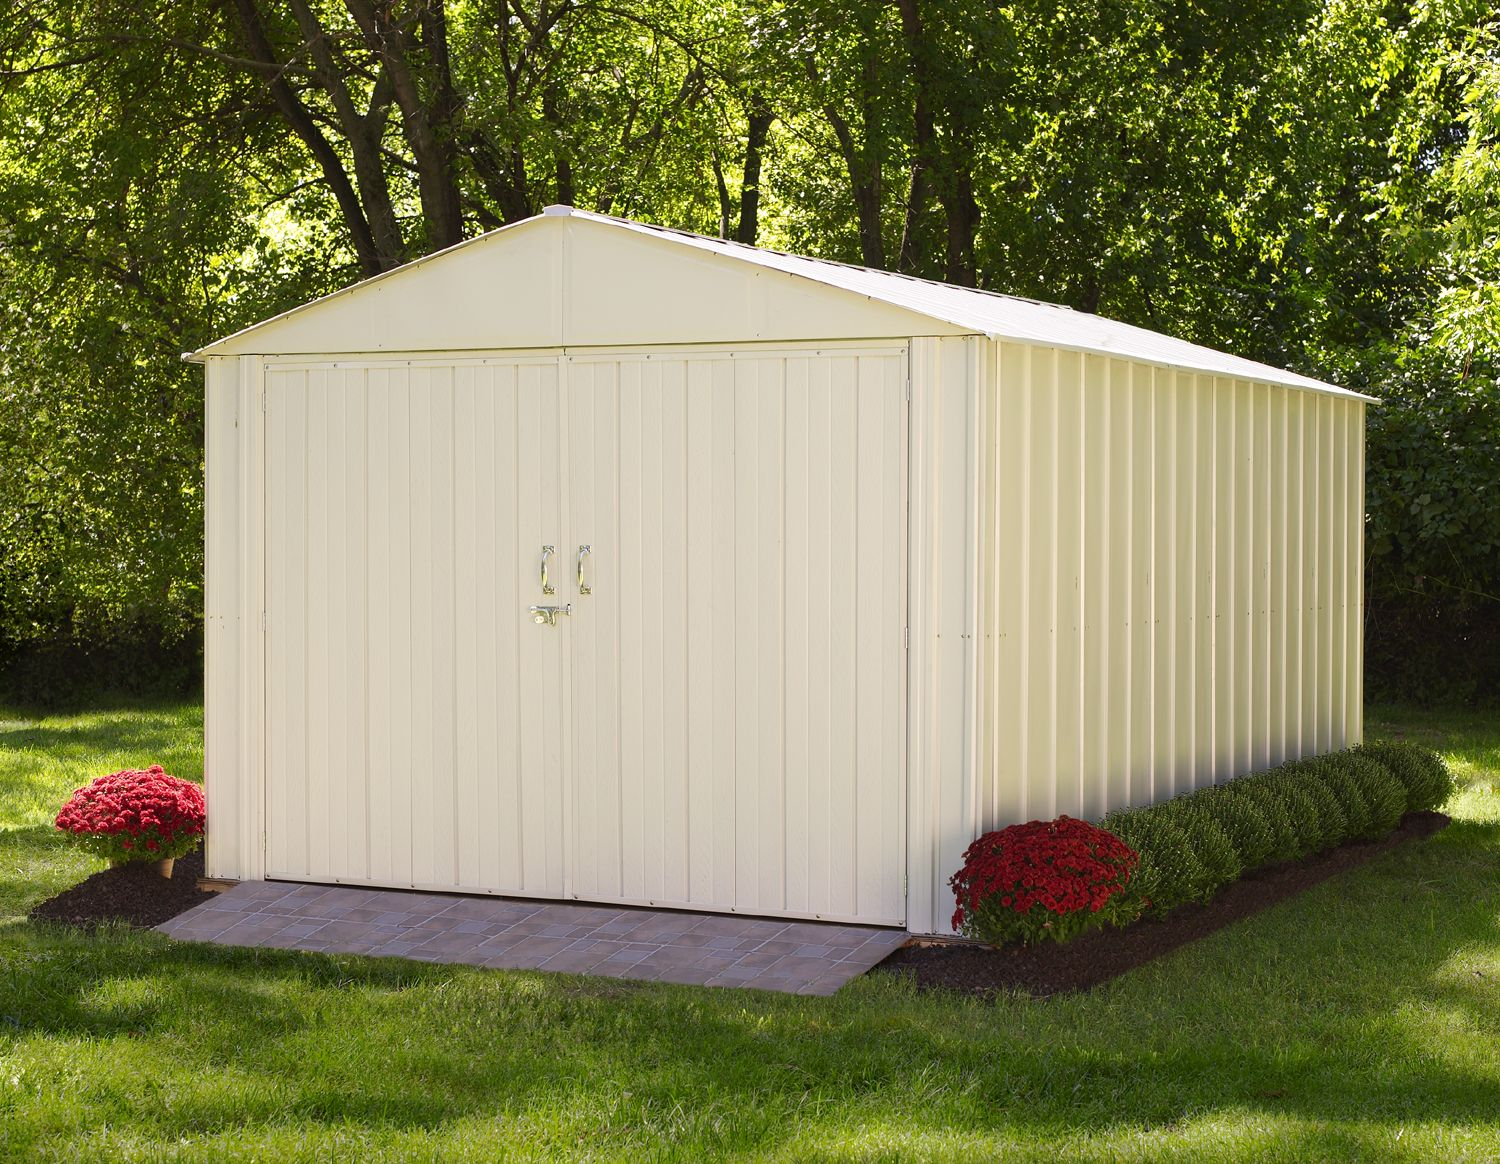 the commander steel storage shed comes in sizes 10 x 10 to 10 - Garden Sheds 10 X 5